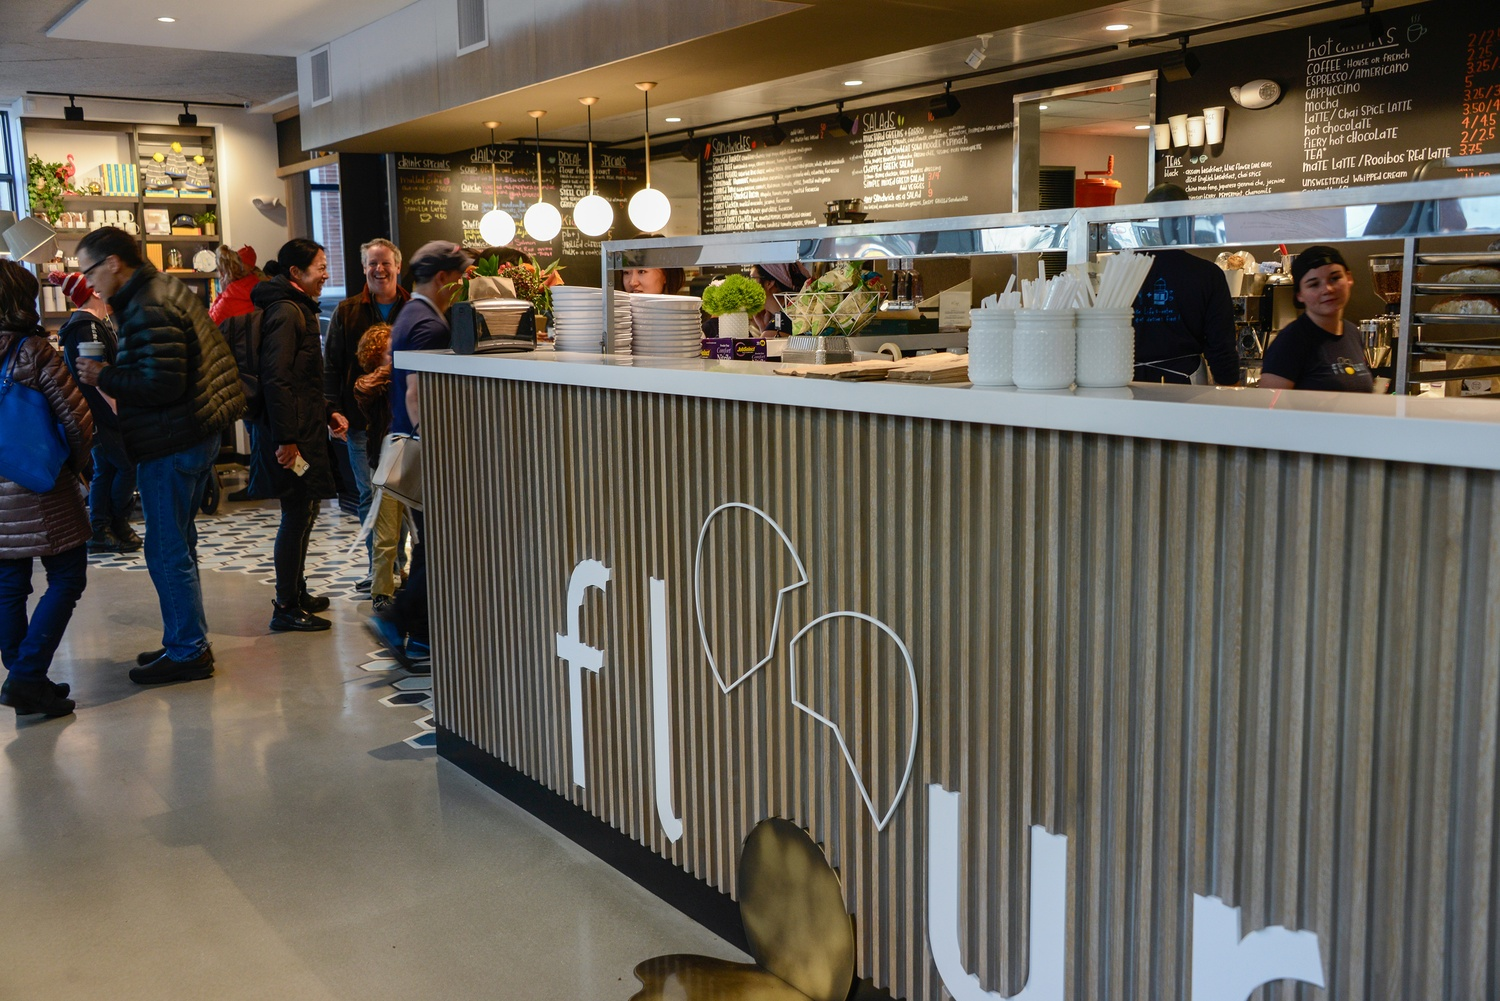 Harvard Square's newest sweet spot is Flour, a bakery-cafe started by Harvard graduate Joanne Chang.